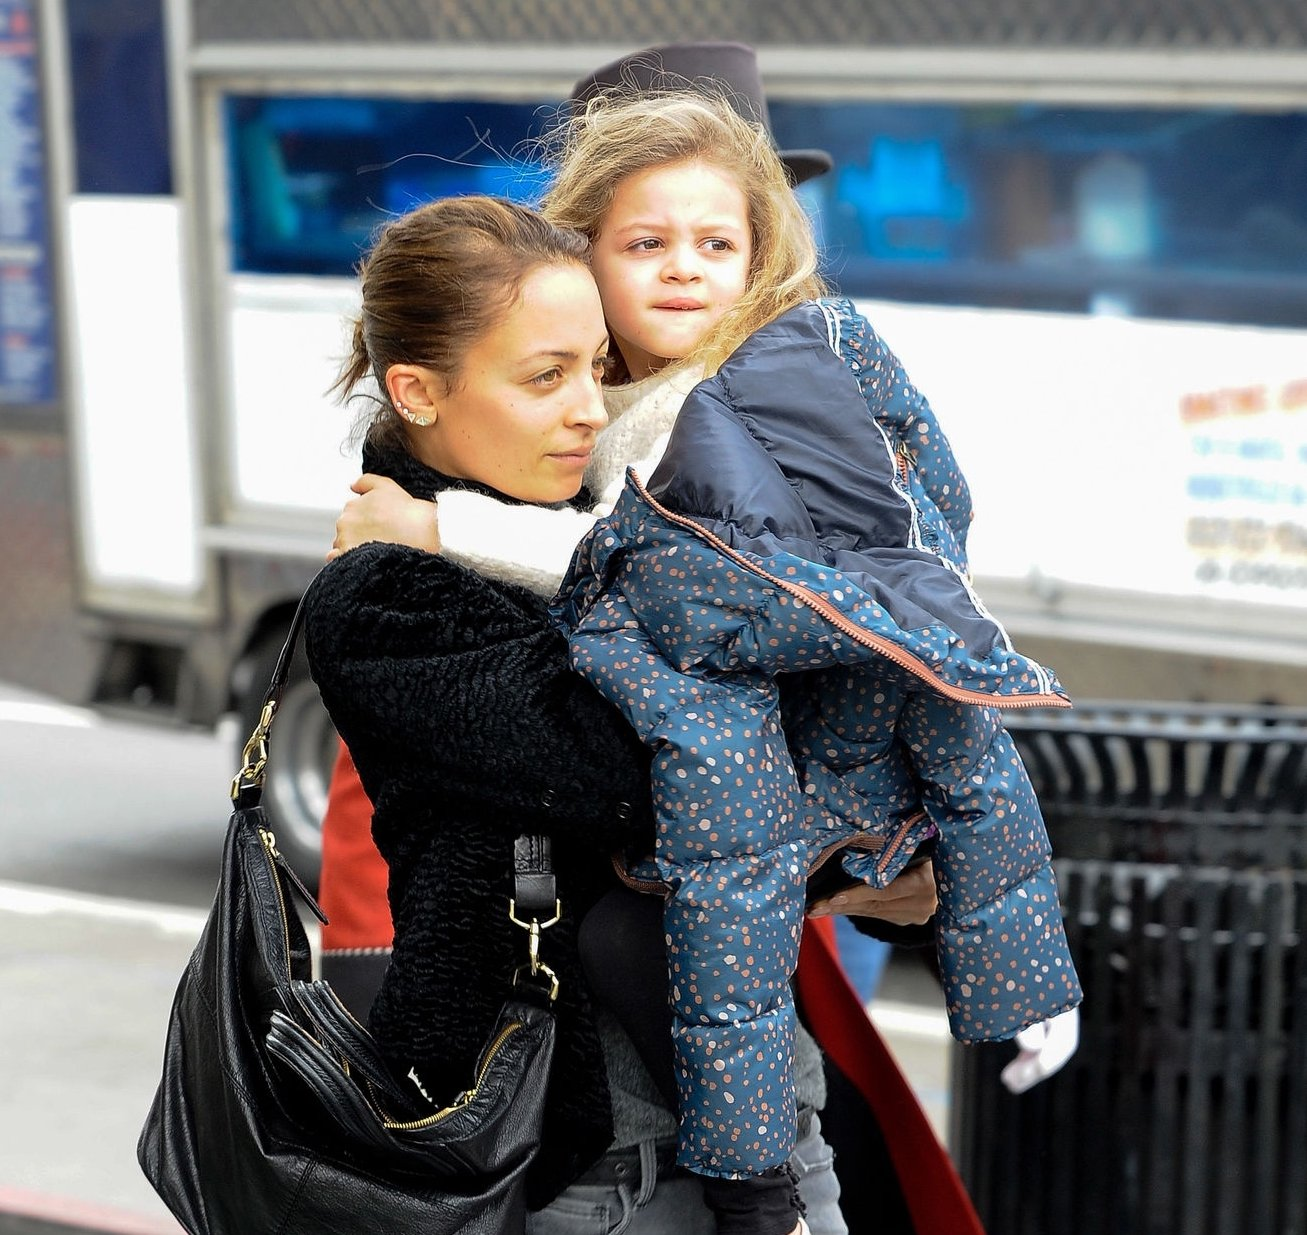 Image Credit: Getty Images/Nicole carrying her daughter